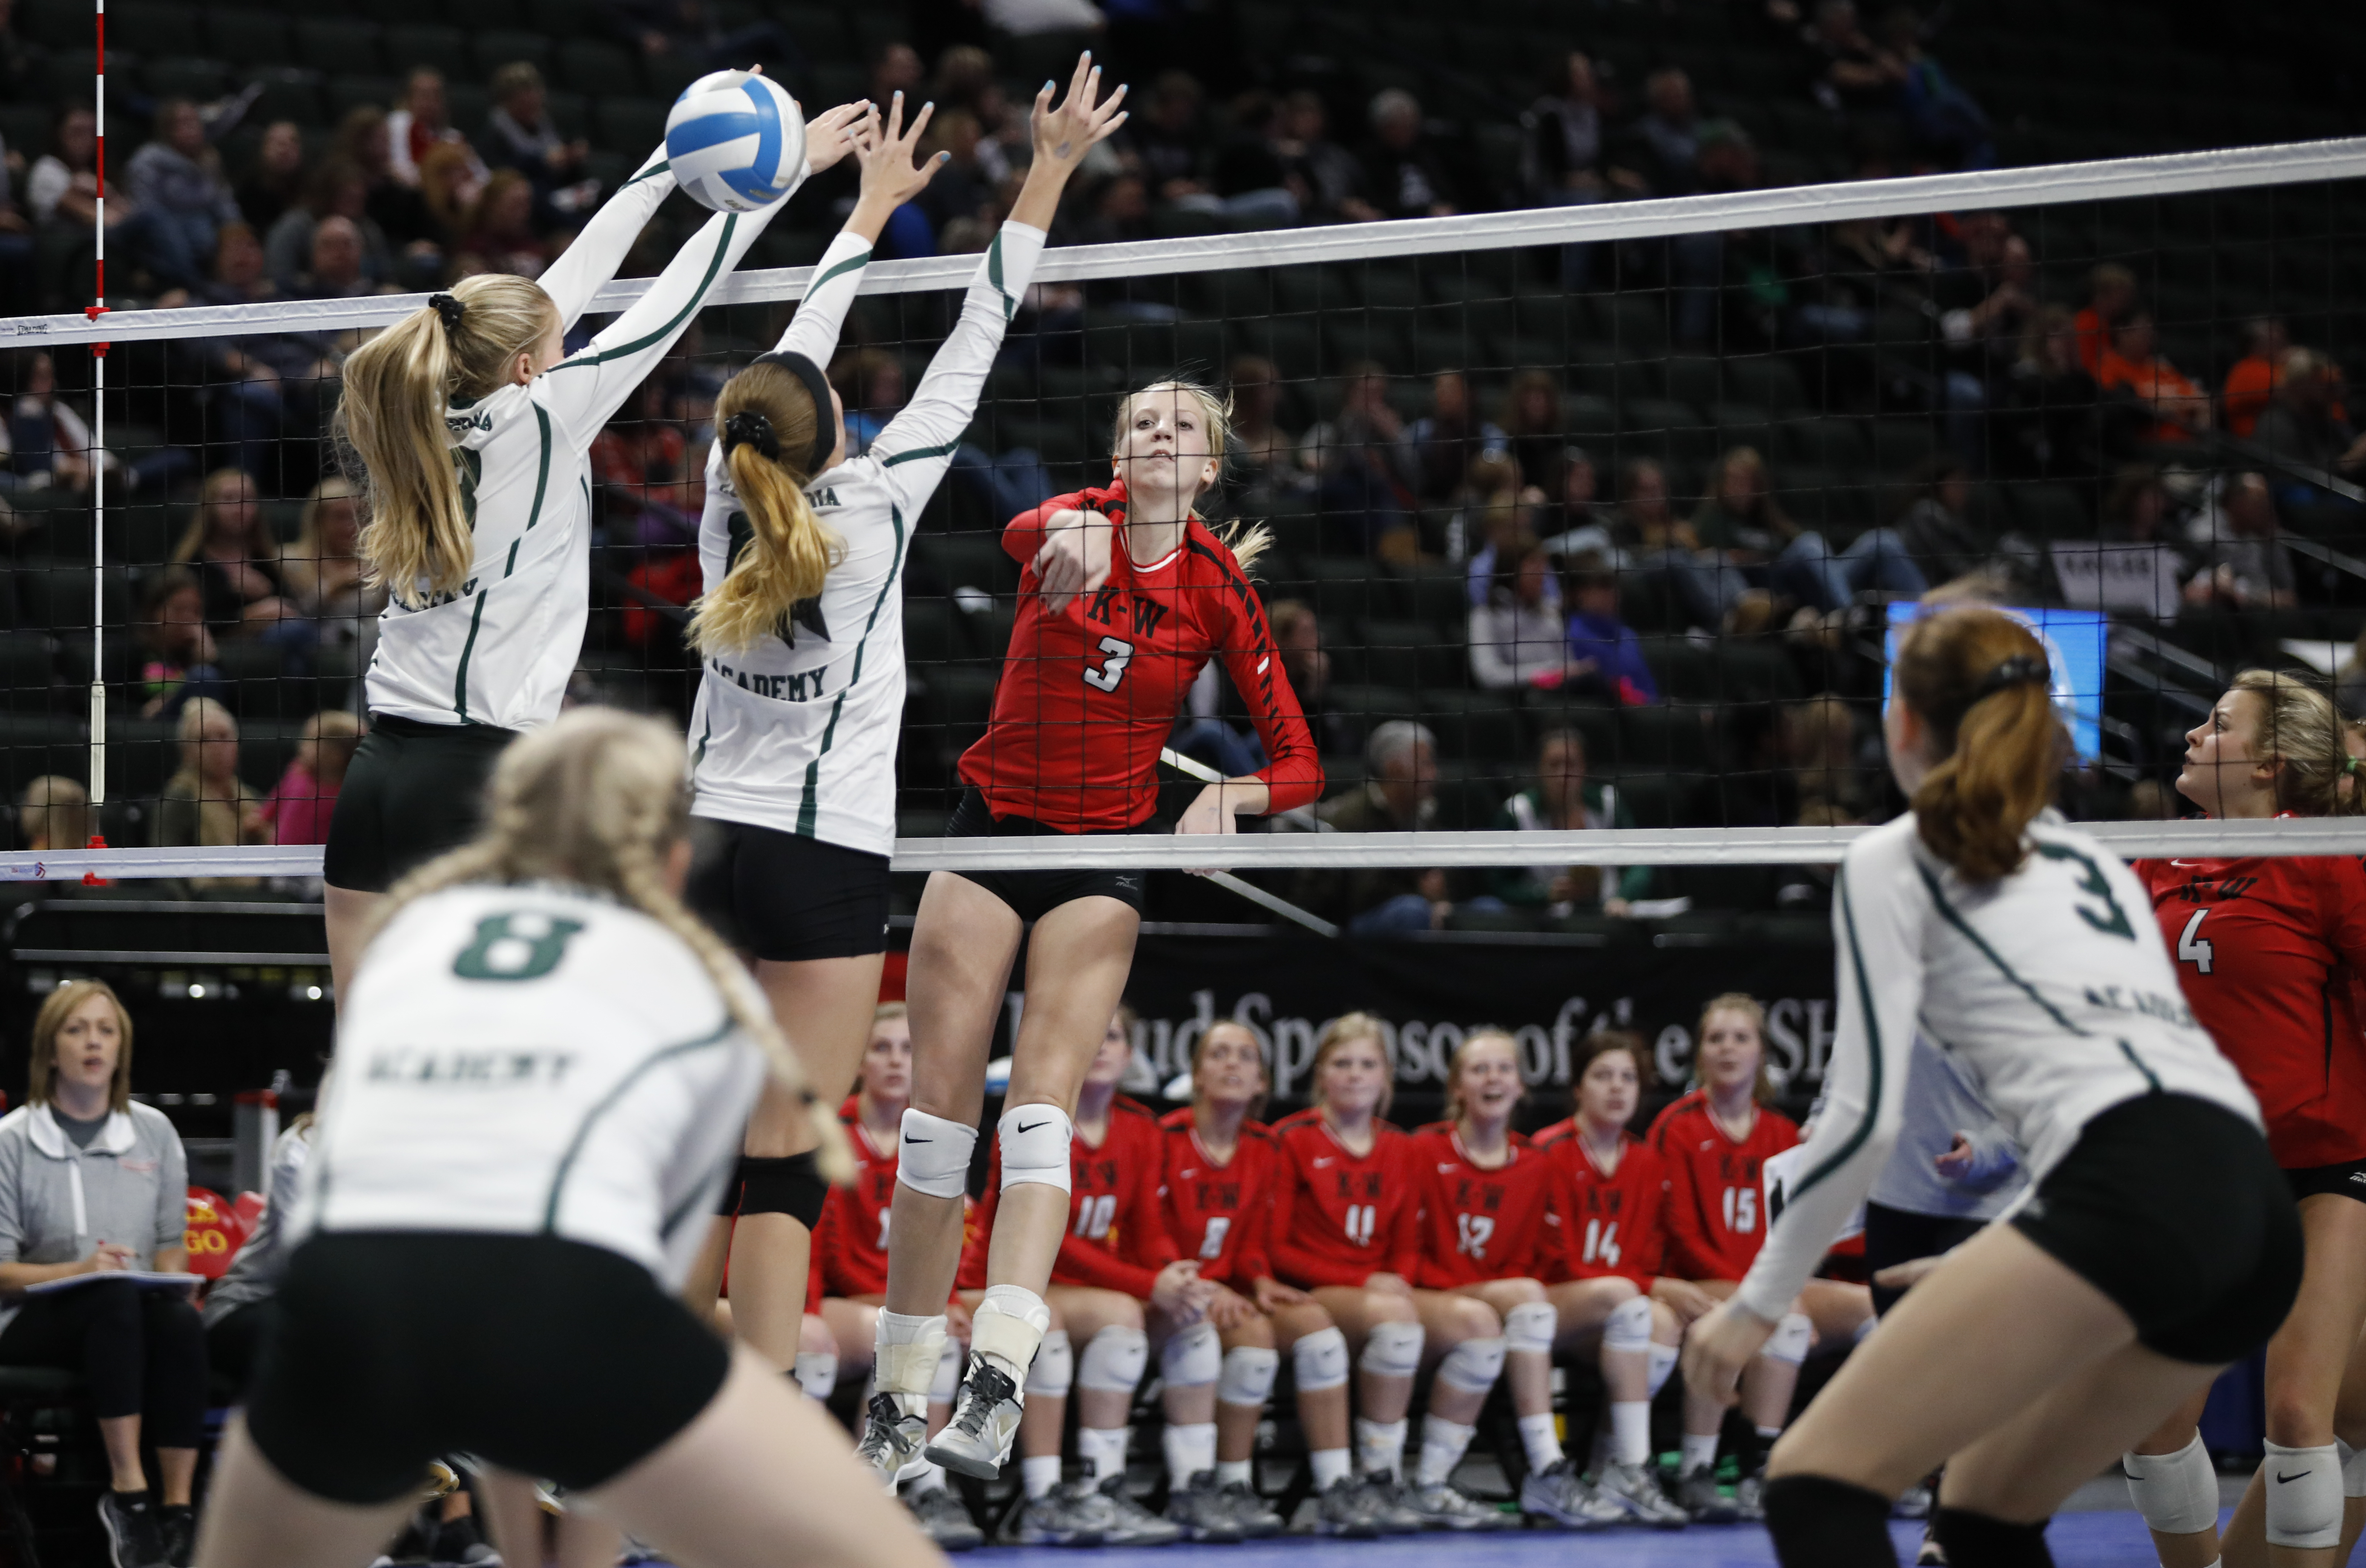 Megan Flom (3) of Keneon-Wanamingo hits the ball into Concordia territory. Concordia upset Kenyon-Wanamingo in the 2A semi-finals at the Xcel Energy Center and will advance in the state tournament. Photo by Chris Juhn